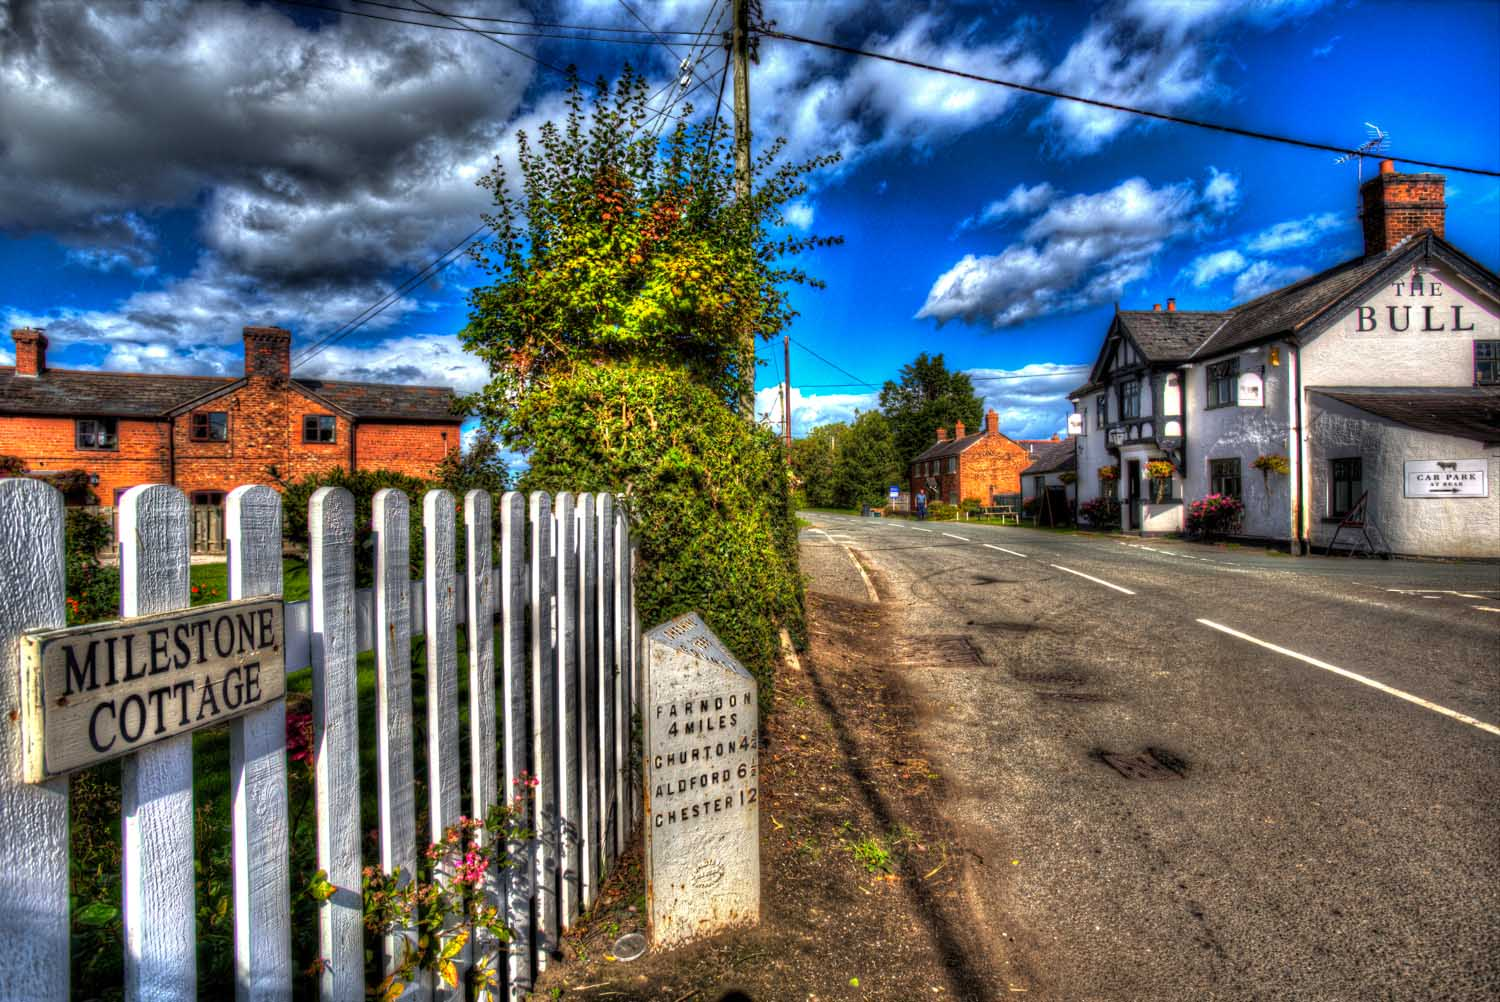 Village of Shocklach, Cheshire, England. Artistic view of the B5069 main road through the village of Shocklach, with The Bull Inn public house in the background.